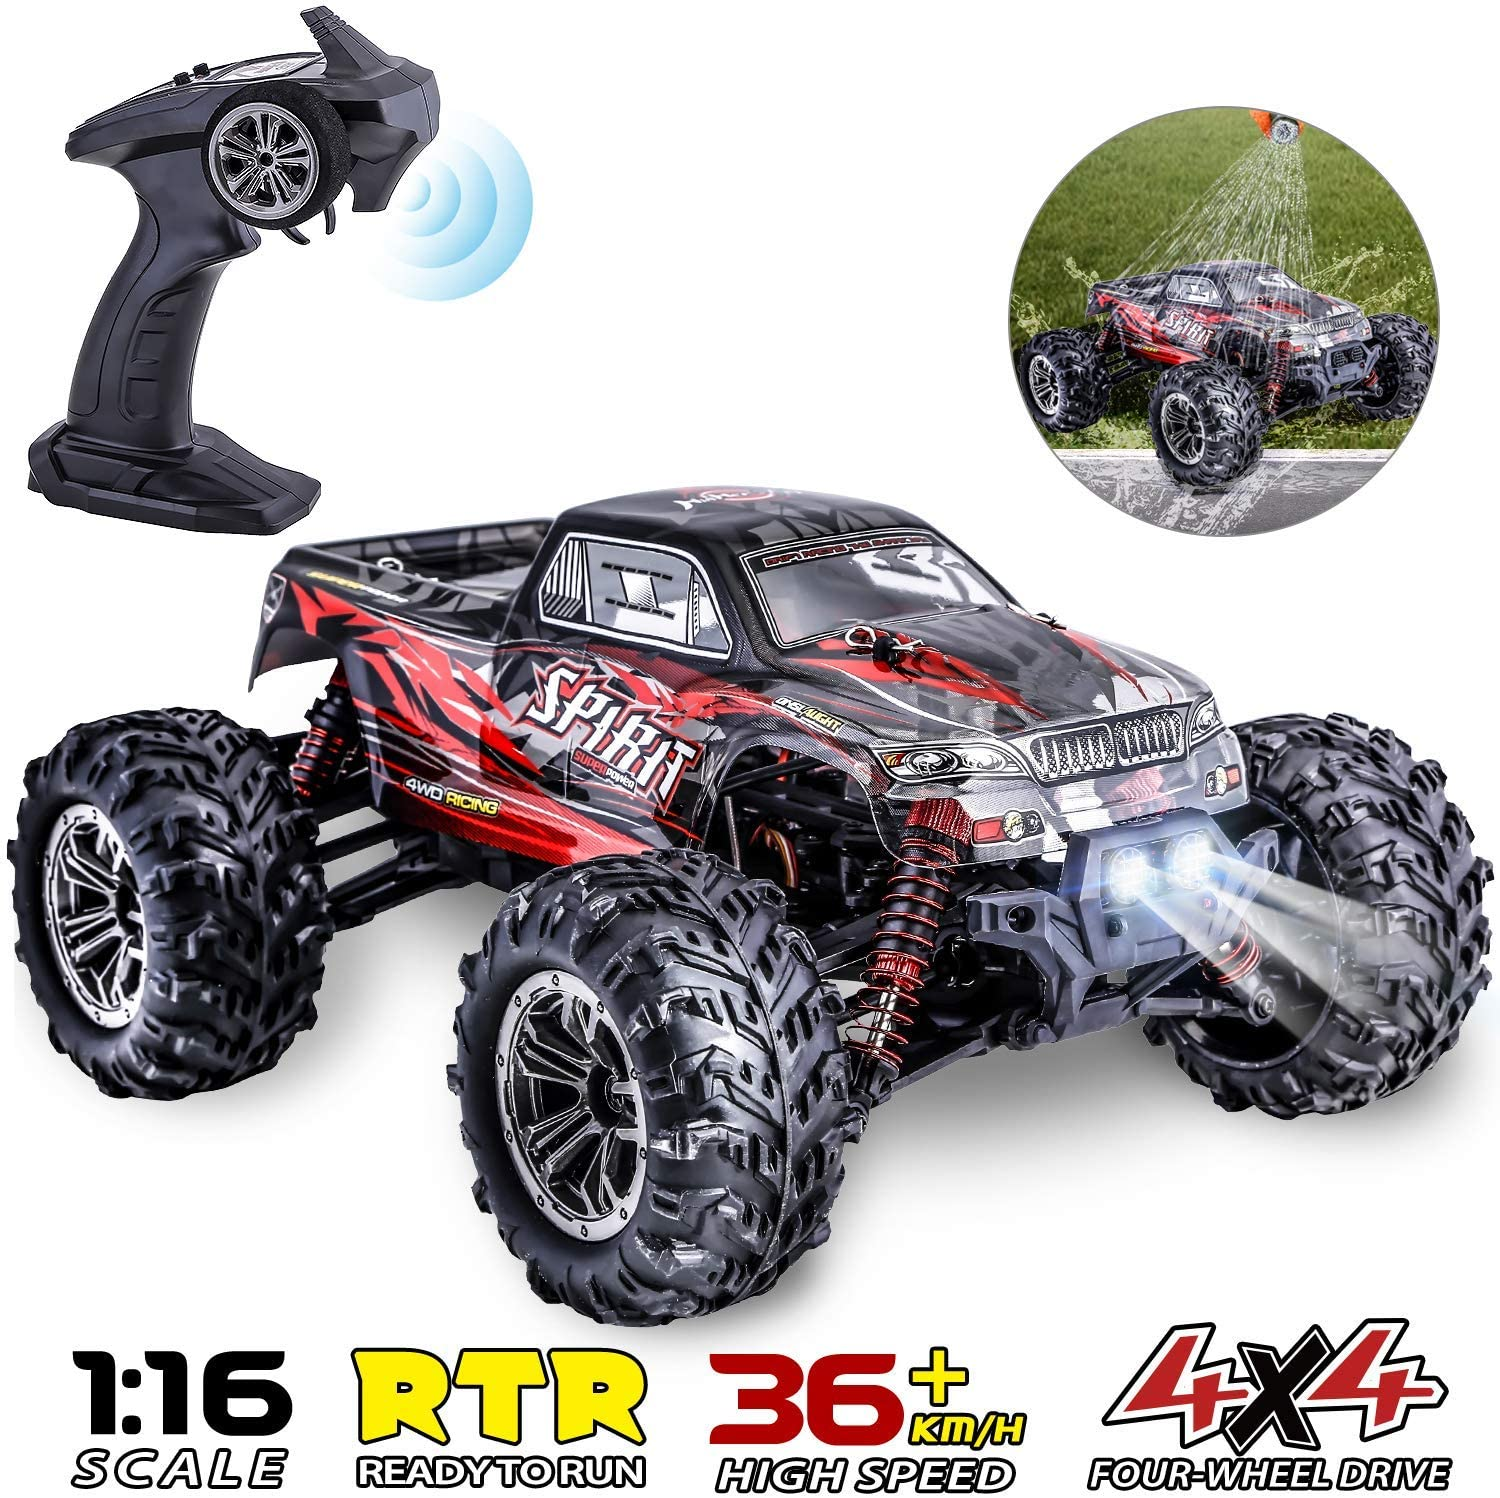 HISTOYE Remote Control Car IPX4 Waterproof Off Road RC Cars 1:16 // 36km/h  Monster Hobby Cross Country Buggy with Headlights|RC Cars